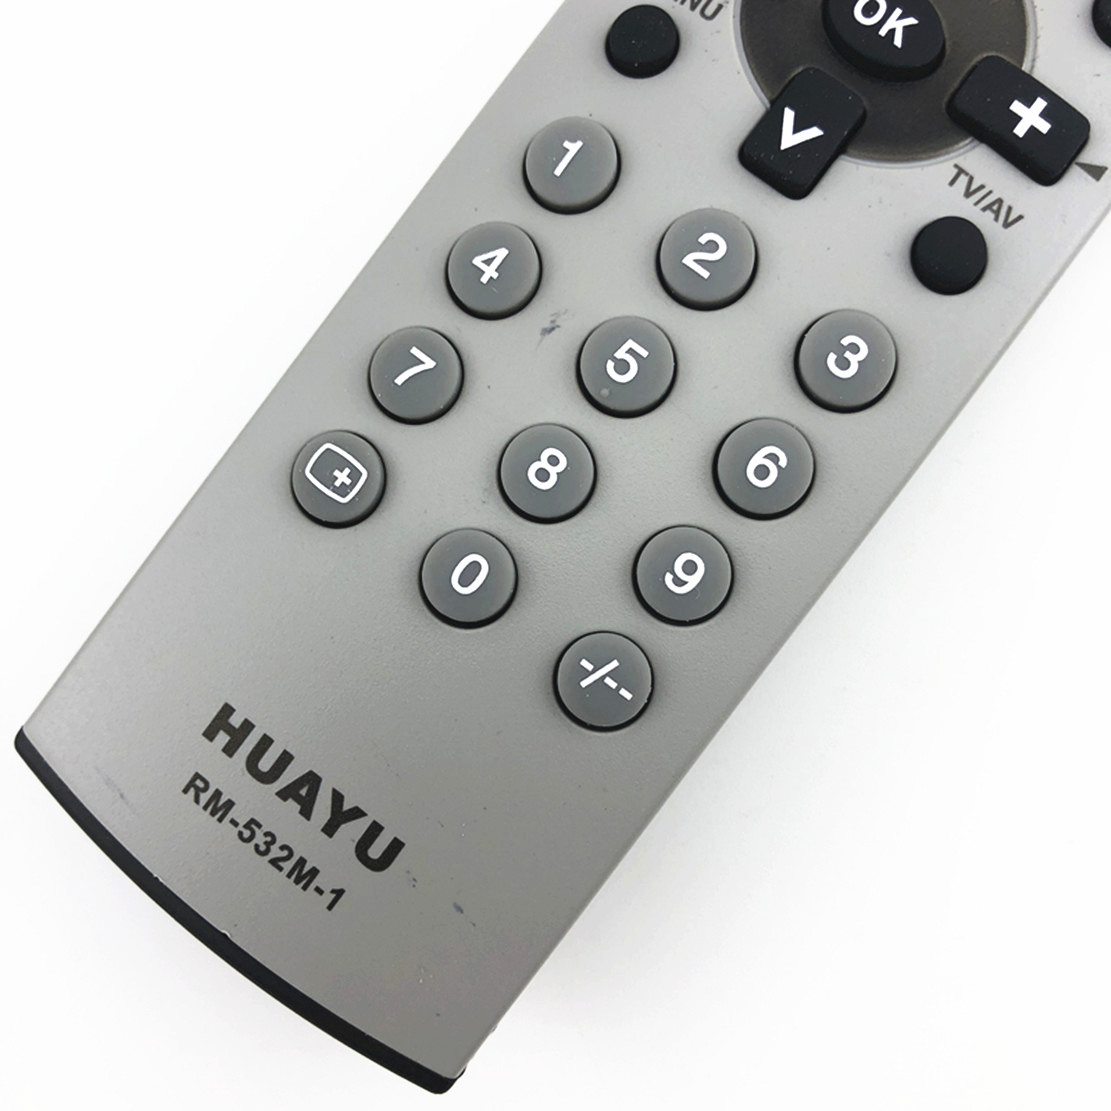 fb5ed5148 remote control suitable for panasonic TV REMOTE CONTROL CONTROLLER LCD LED  HD EUR7717010 EUR7717020 EUR7717030 EUR7717070 huayu-in Remote Controls  from ...